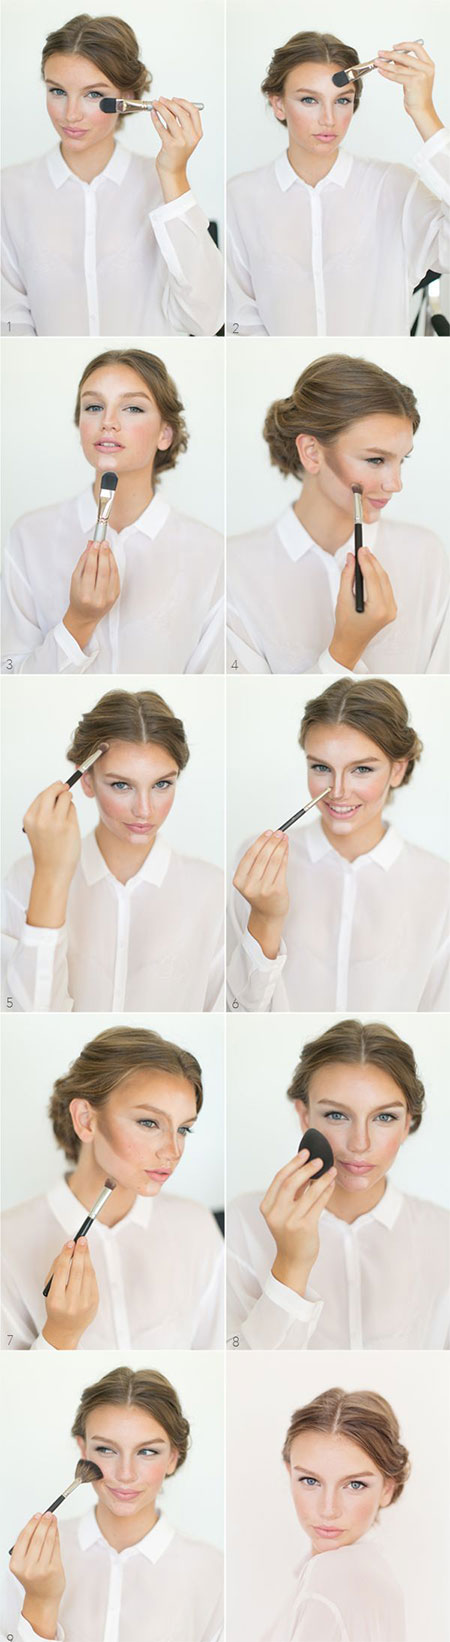 12-Easy-Step-By-Step-Natural-Eye-Make-Up-Tutorials-For-Beginners-2014-12